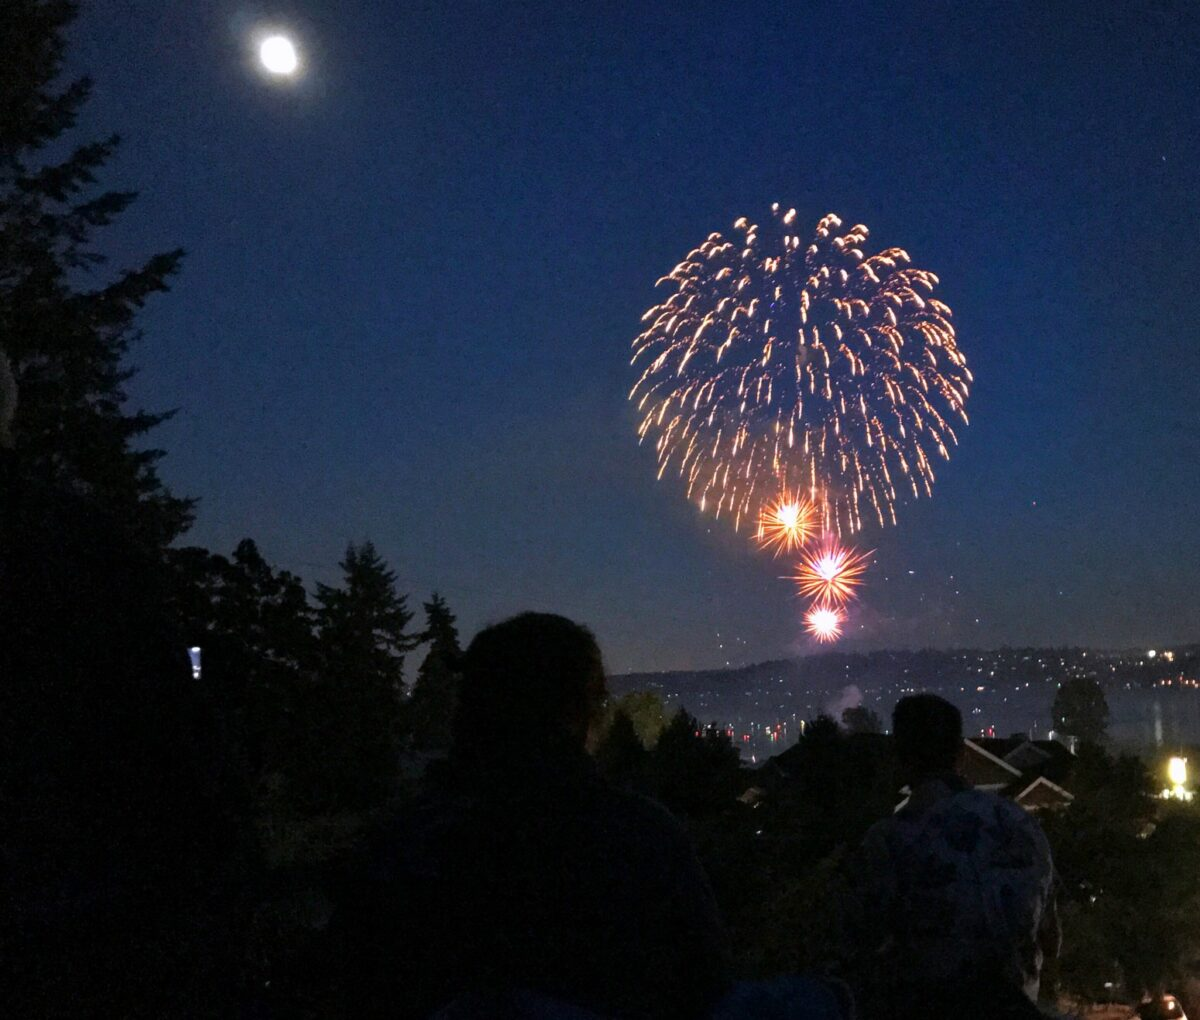 12 Best Fireworks Displays Ever to Watch in Awe on Independence Day